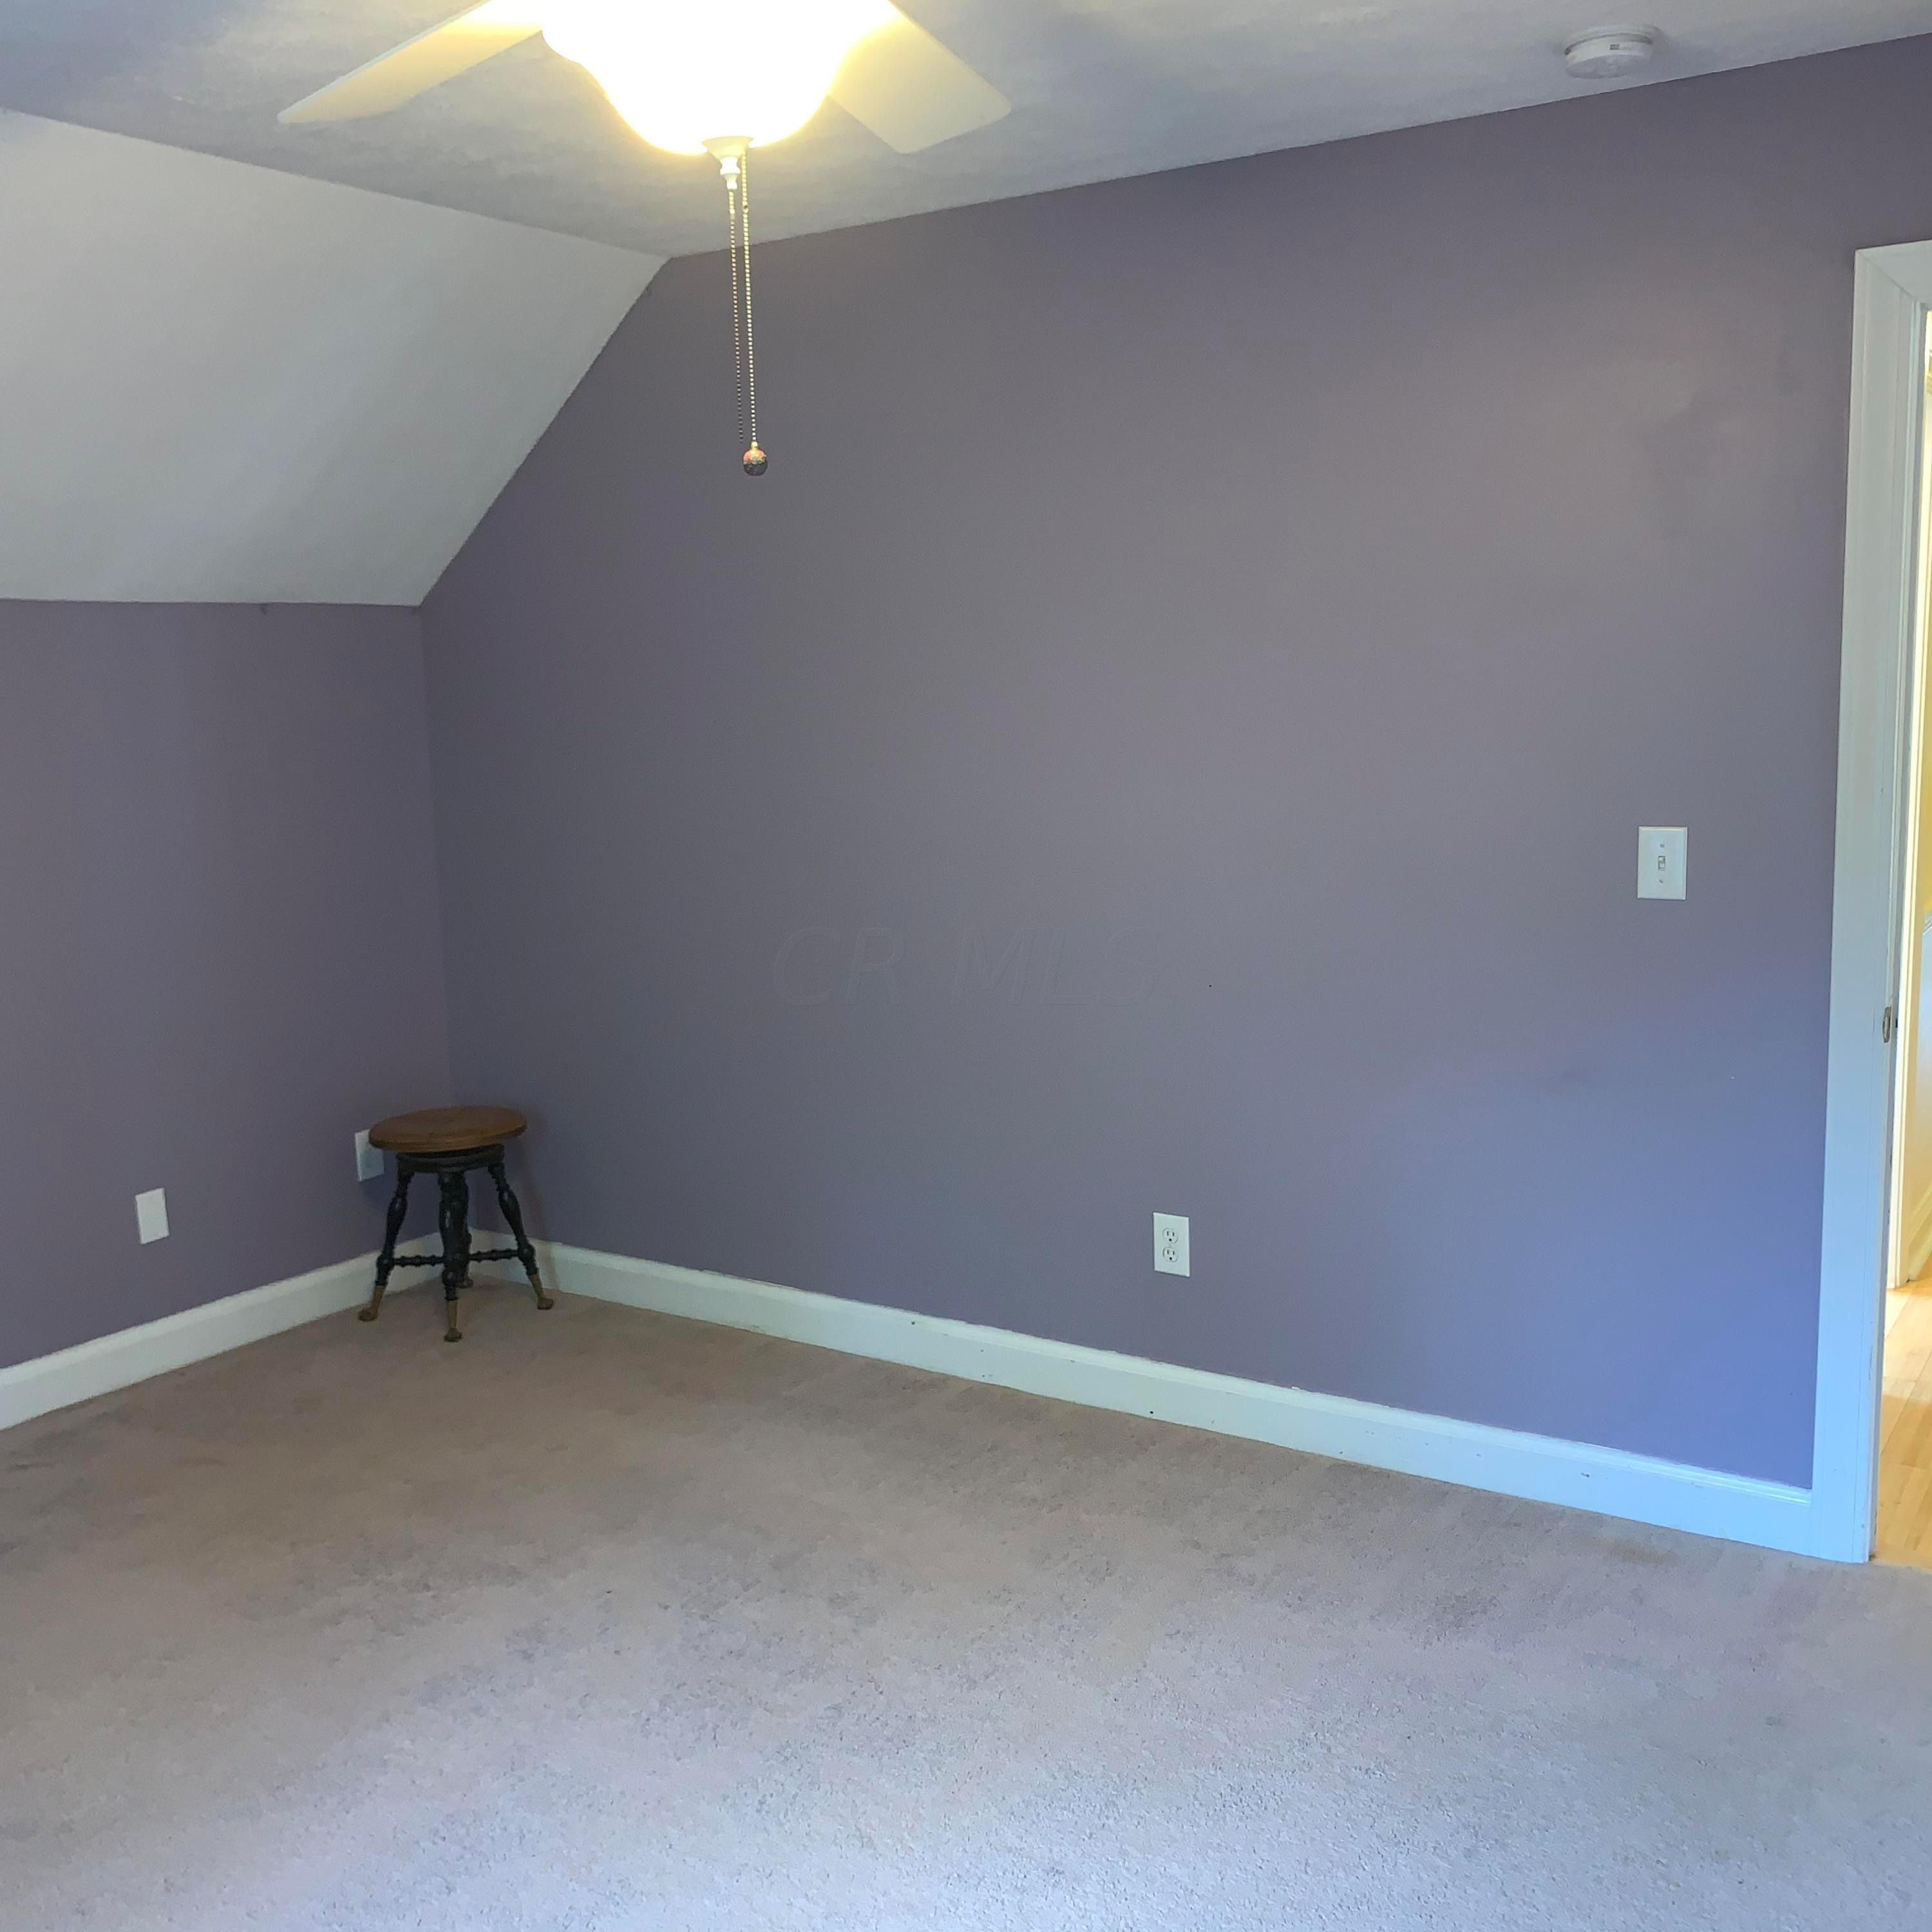 7911 Tipperary Court, Dublin, Ohio 43017, 4 Bedrooms Bedrooms, ,3 BathroomsBathrooms,Residential,For Sale,Tipperary,220031248